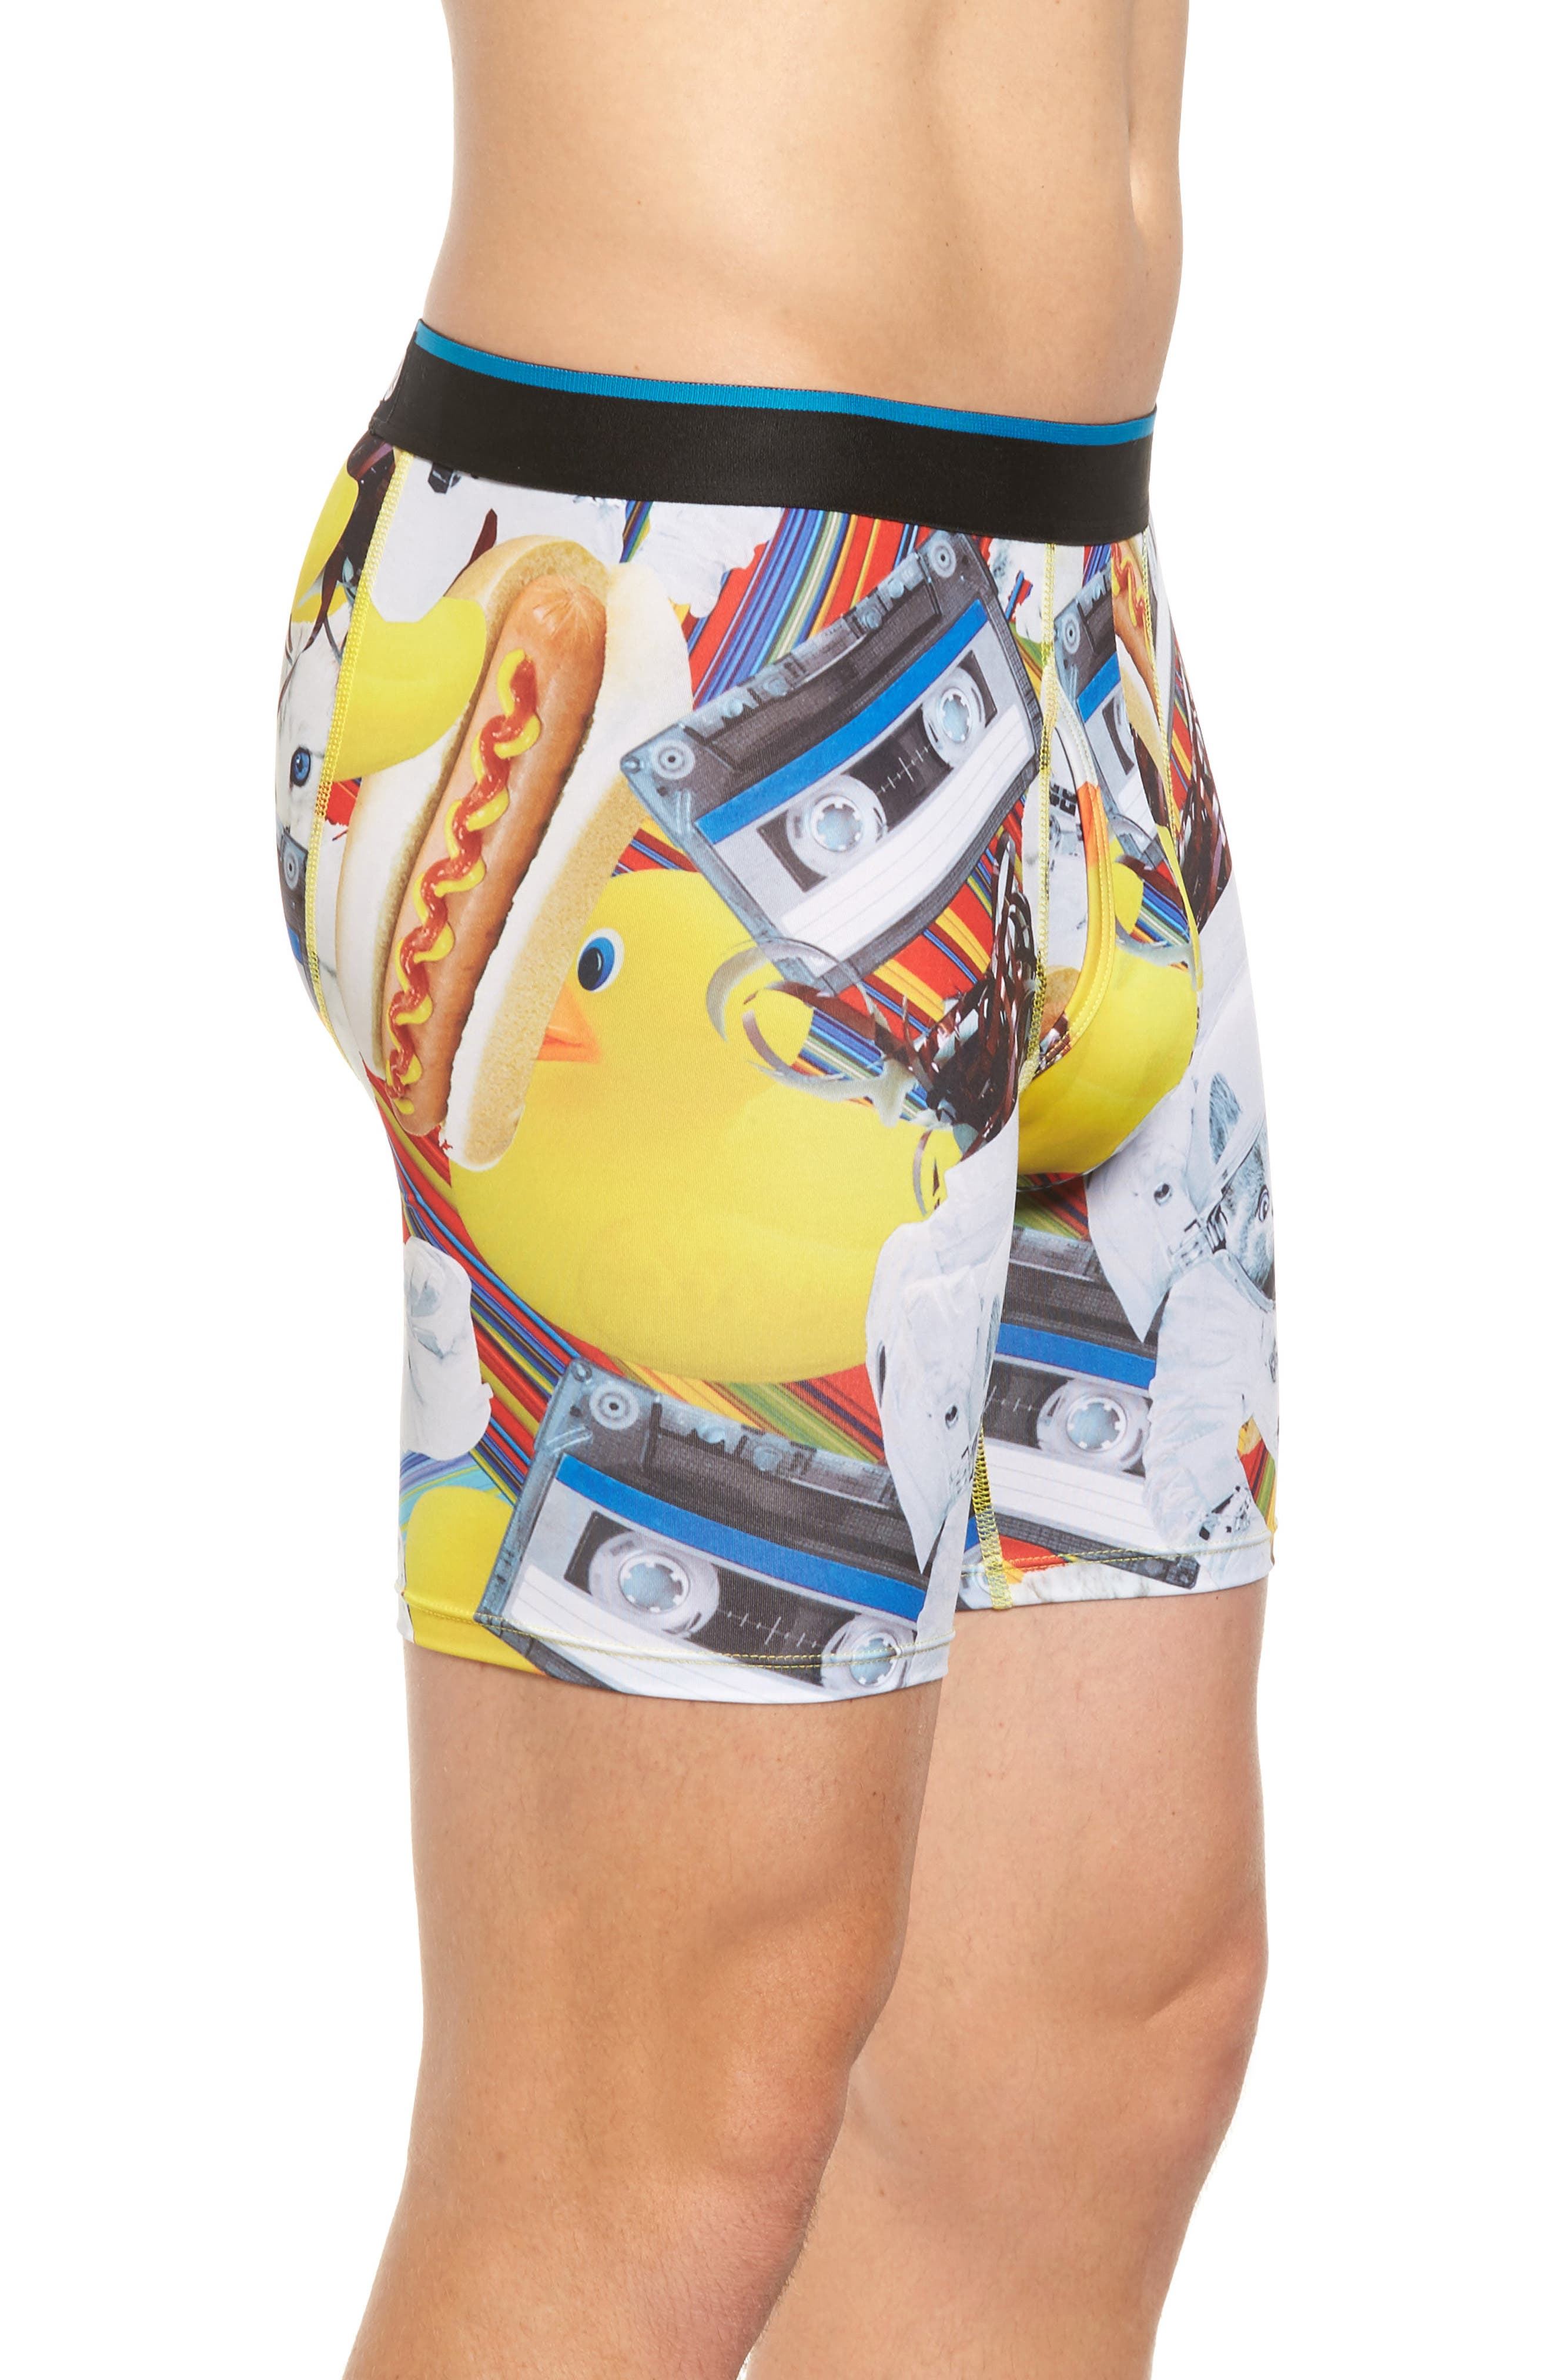 Castronaut Boxer Briefs,                             Alternate thumbnail 3, color,                             Yellow Multi